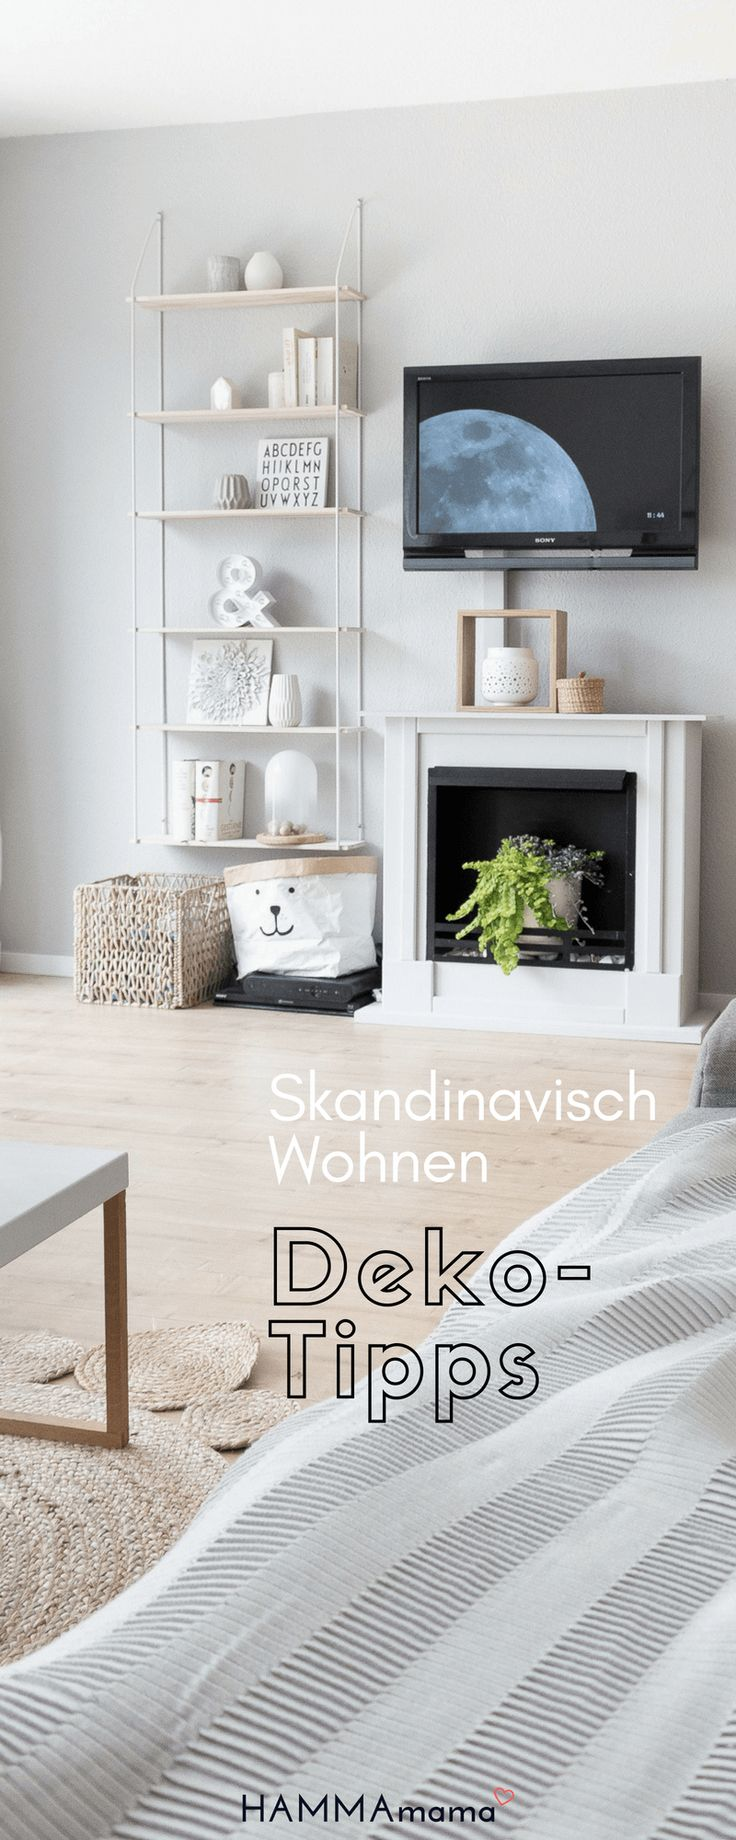 Welcome to our living room ° Still in Scandinavian style, now with summer update